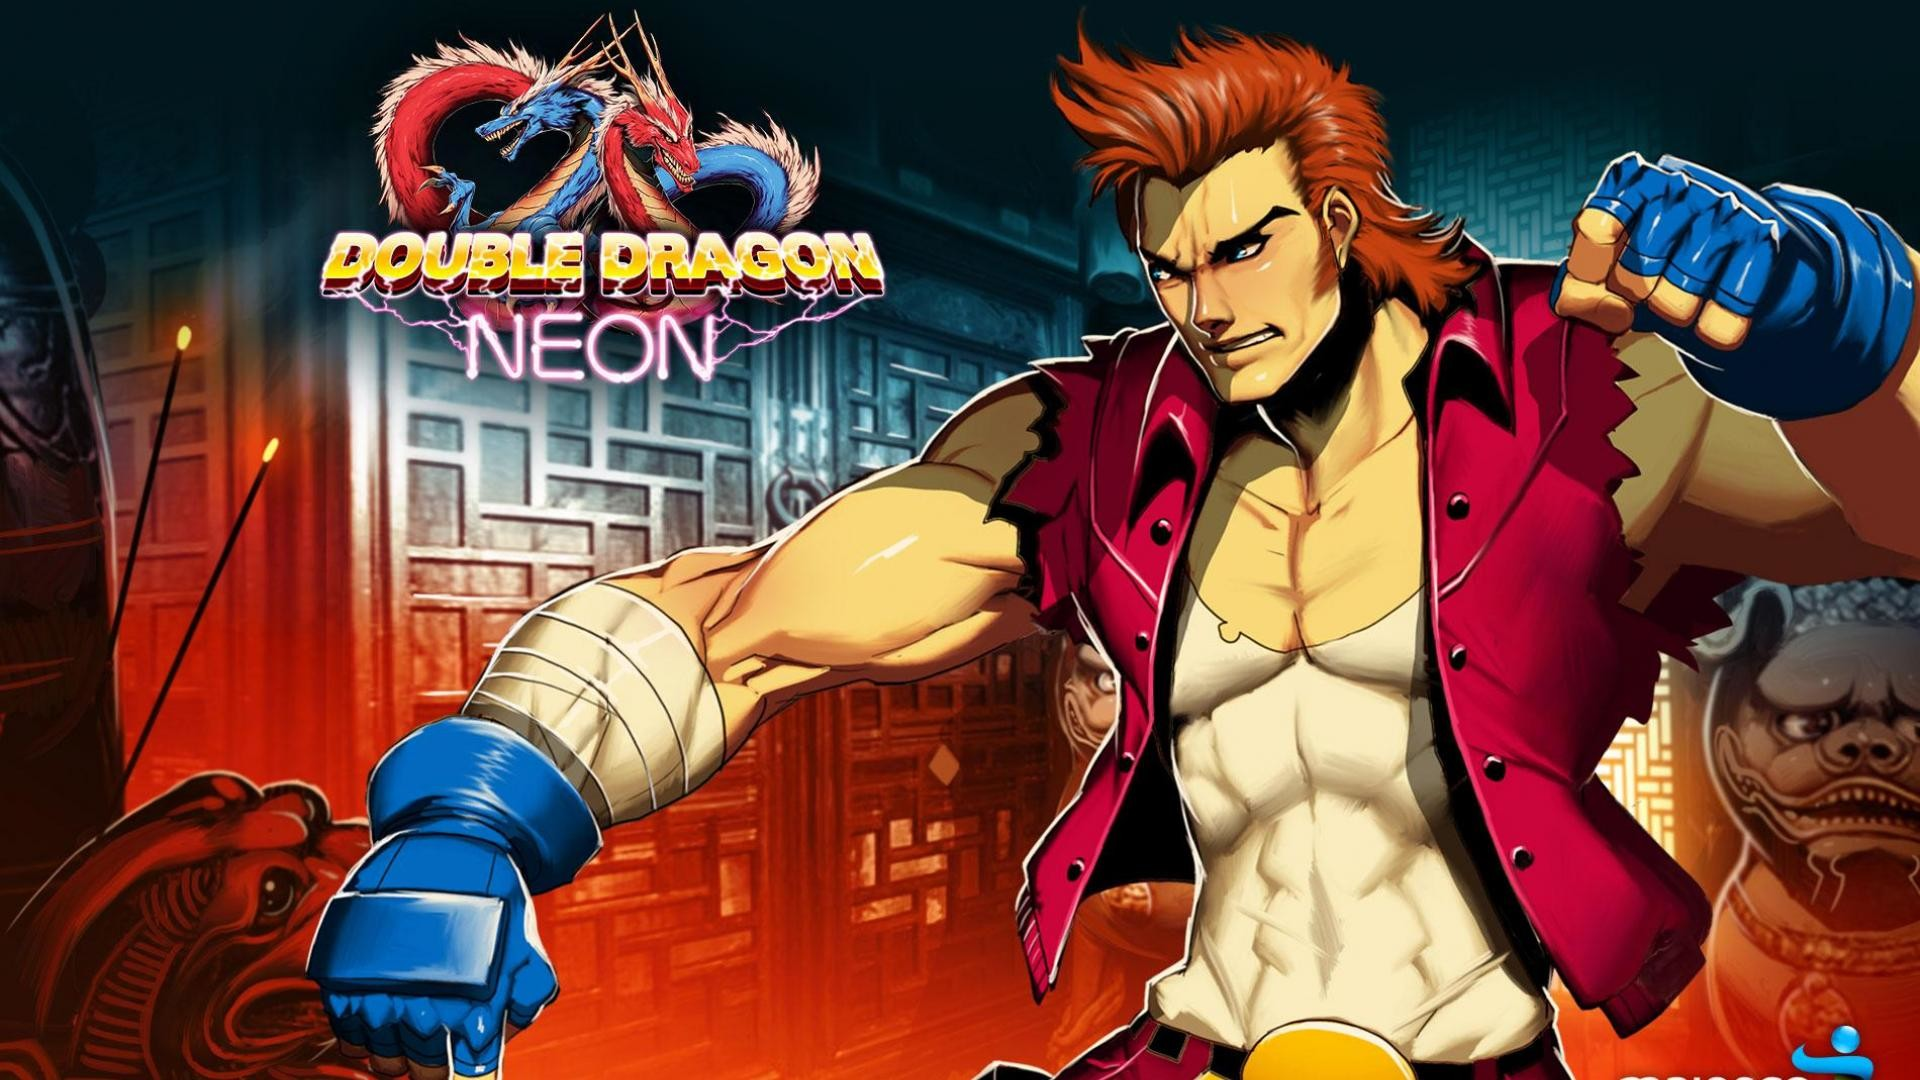 Res: 1920x1080, wallpaper #11 Wallpaper from Double Dragon: Neon